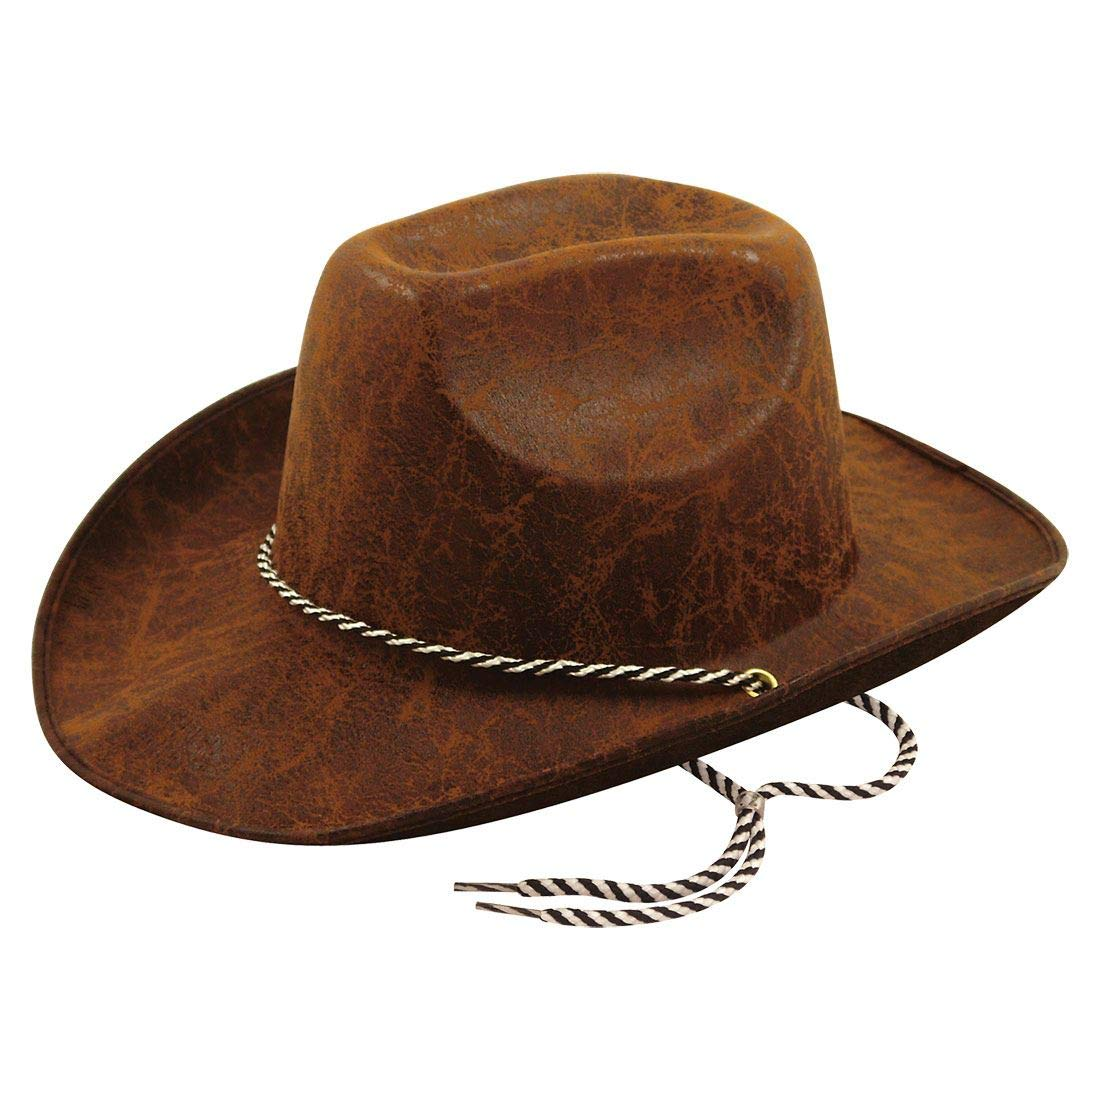 a9eaca20894 Rimi Hanger Mens Womens Leather Look Dark Brown Cowboy Hat Adults Party  Headwear Accessories One Size Fits Most at Amazon Men s Clothing store